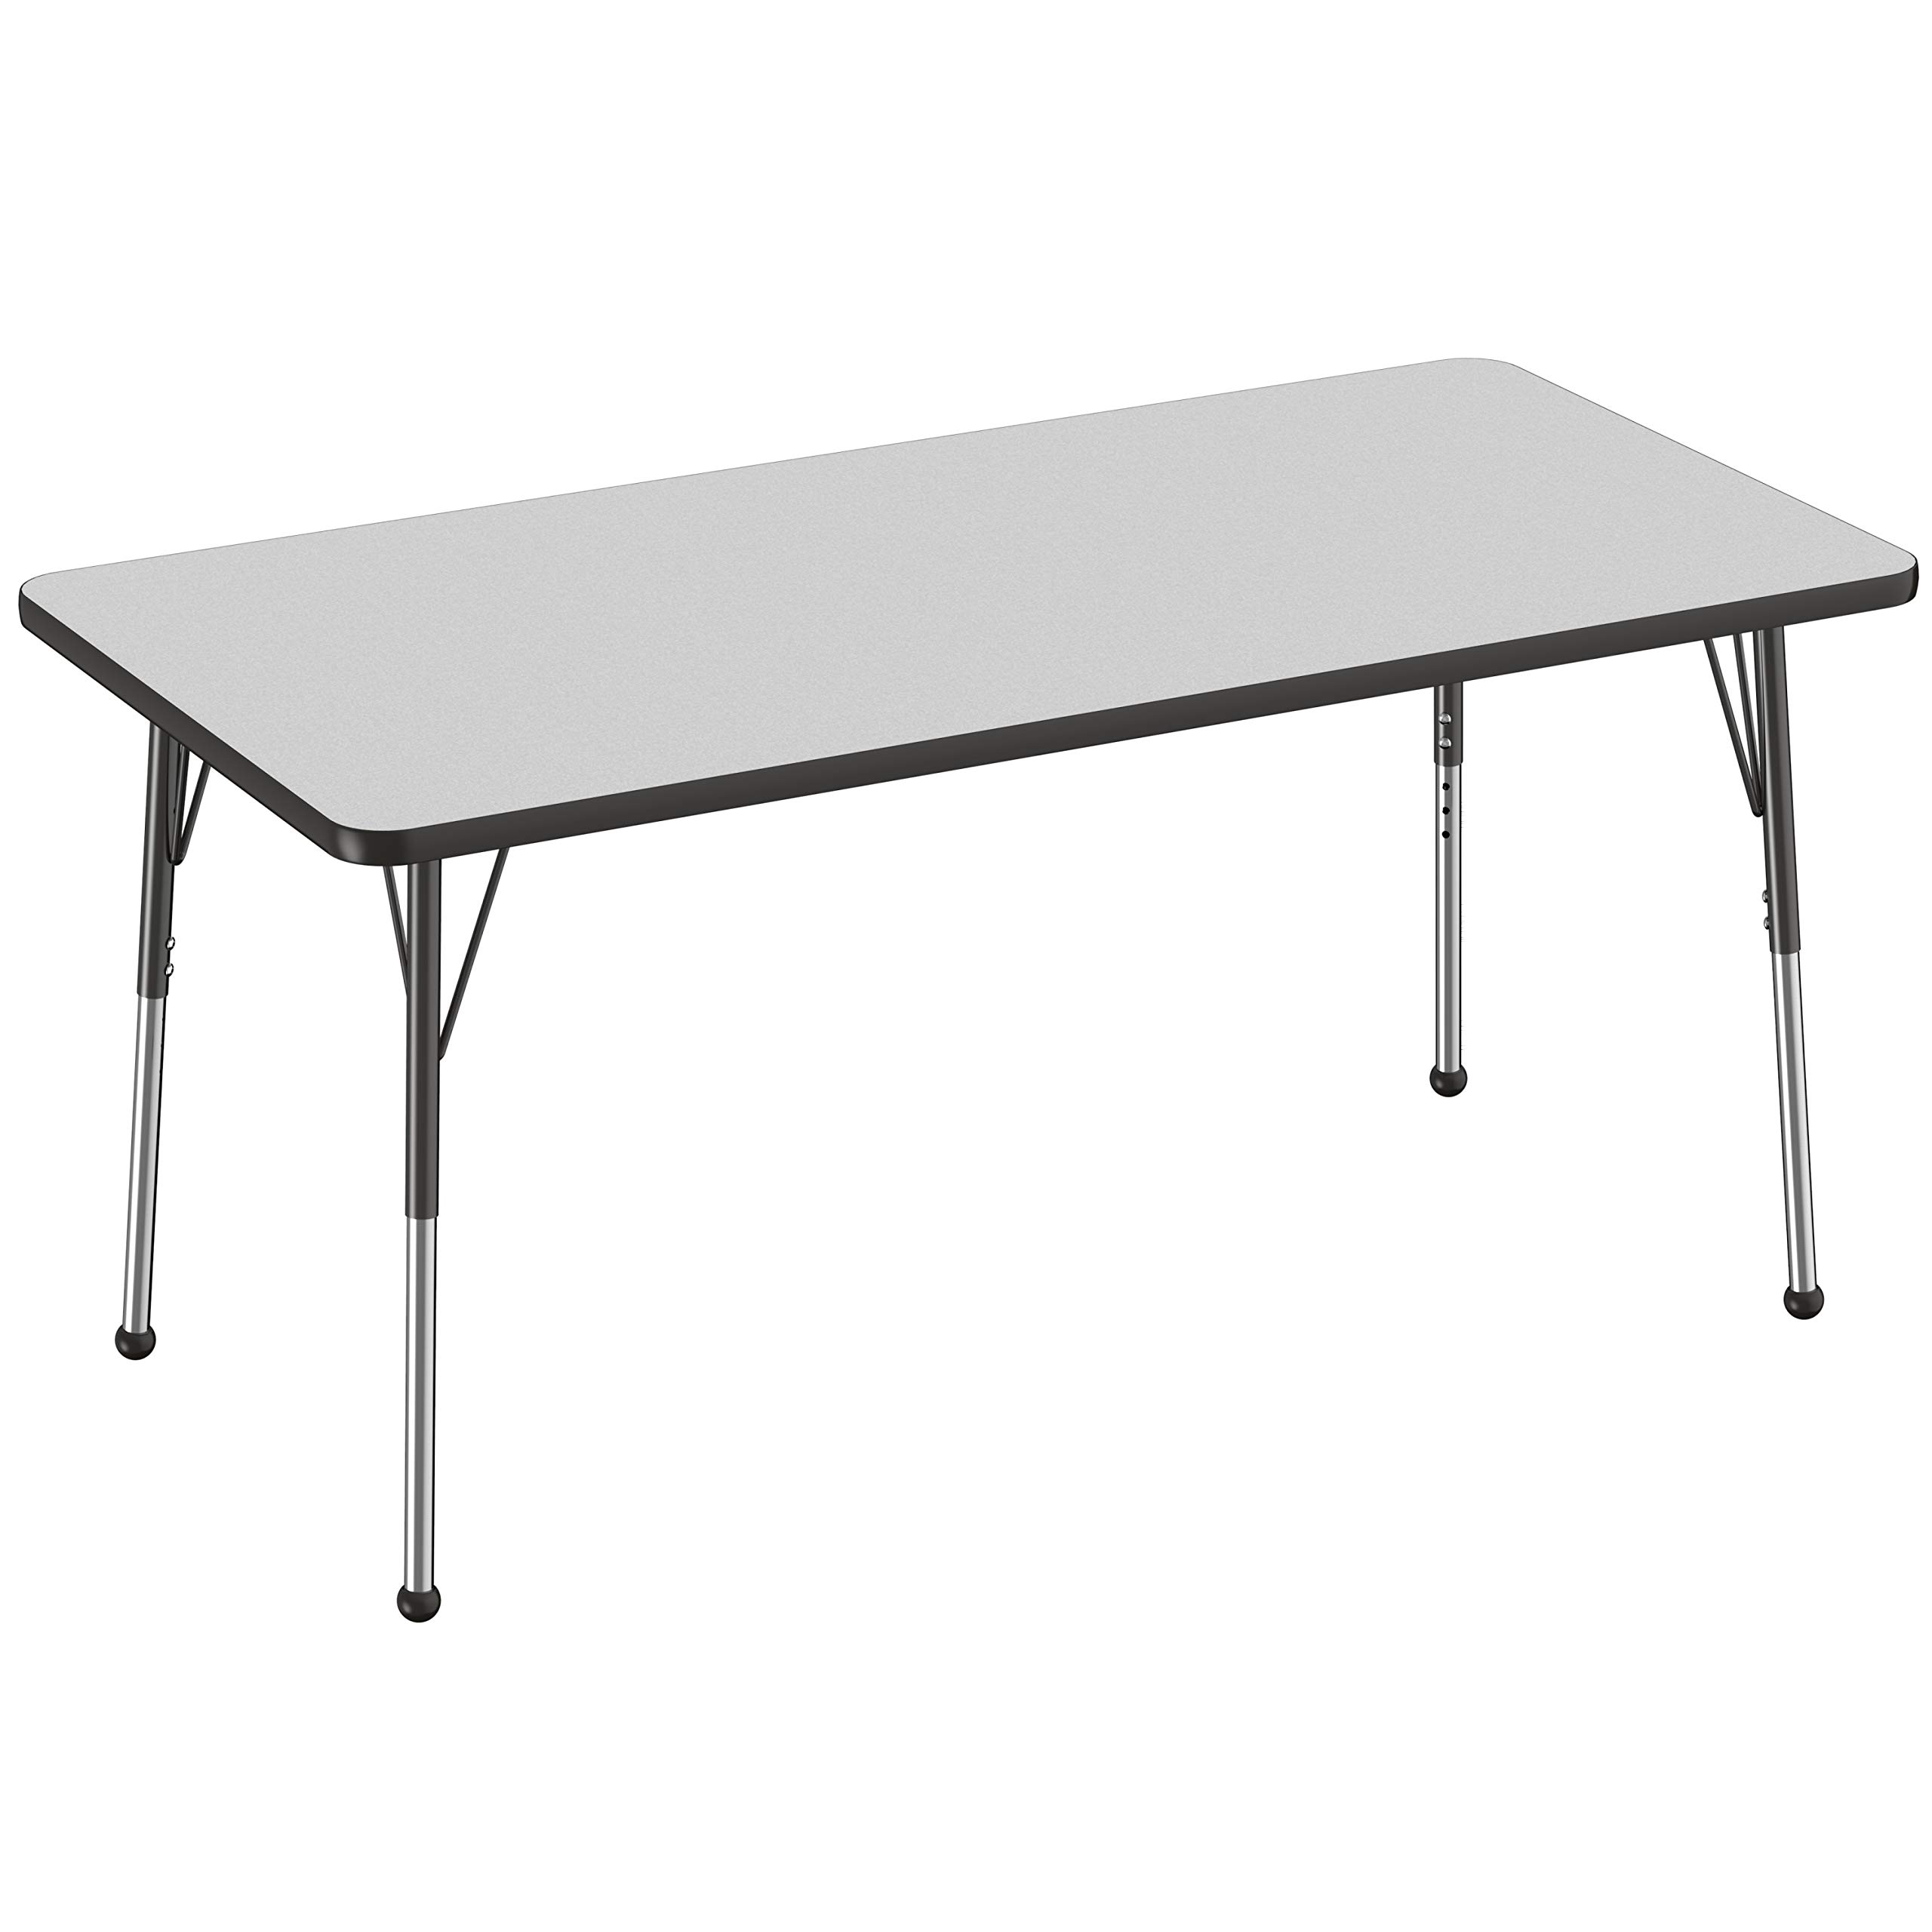 FDP Rectangle Activity School and Office Table (30 x 60 inch), Standard Legs with Ball Glides, Adjustable Height 19-30 inches-Gray Top and Black Edge by Factory Direct Partners